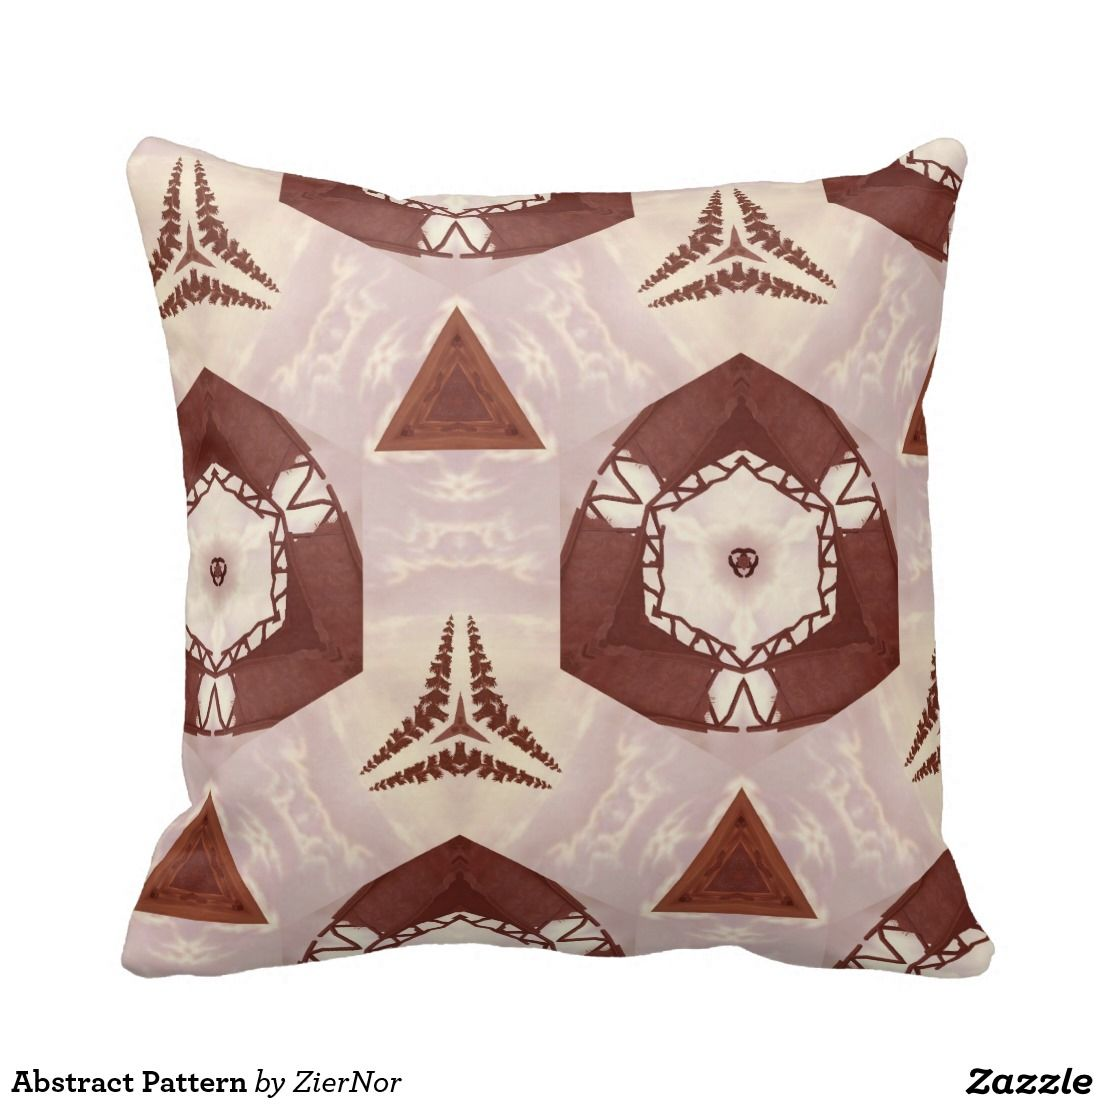 Abstract Pattern Throw Pillows